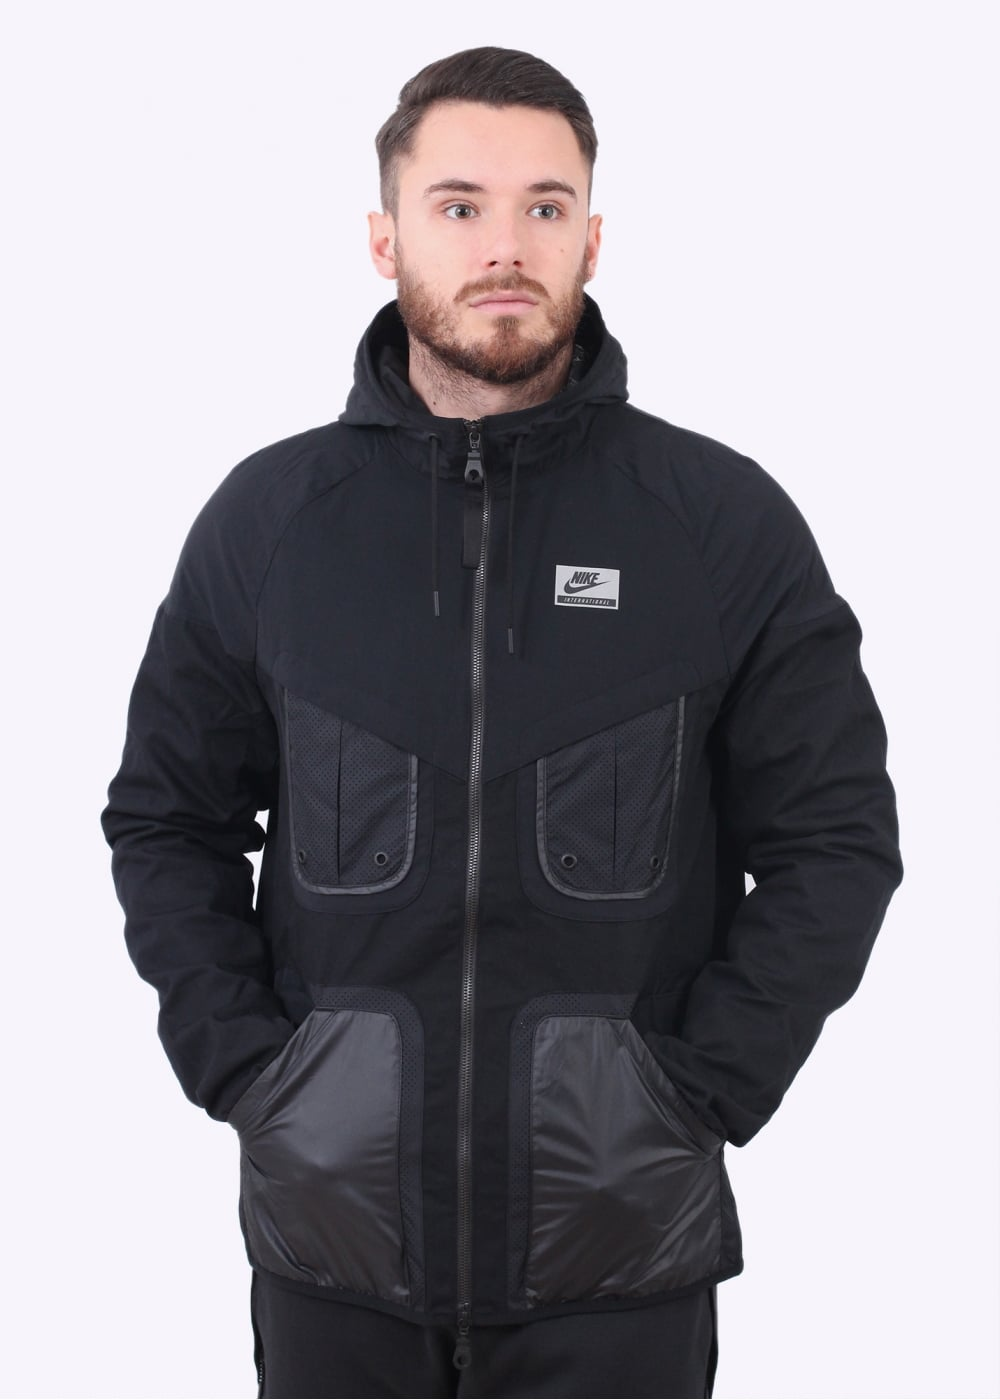 Nike Apparel International Windrunner Jacket - Black - Jackets from ... 9eda946721